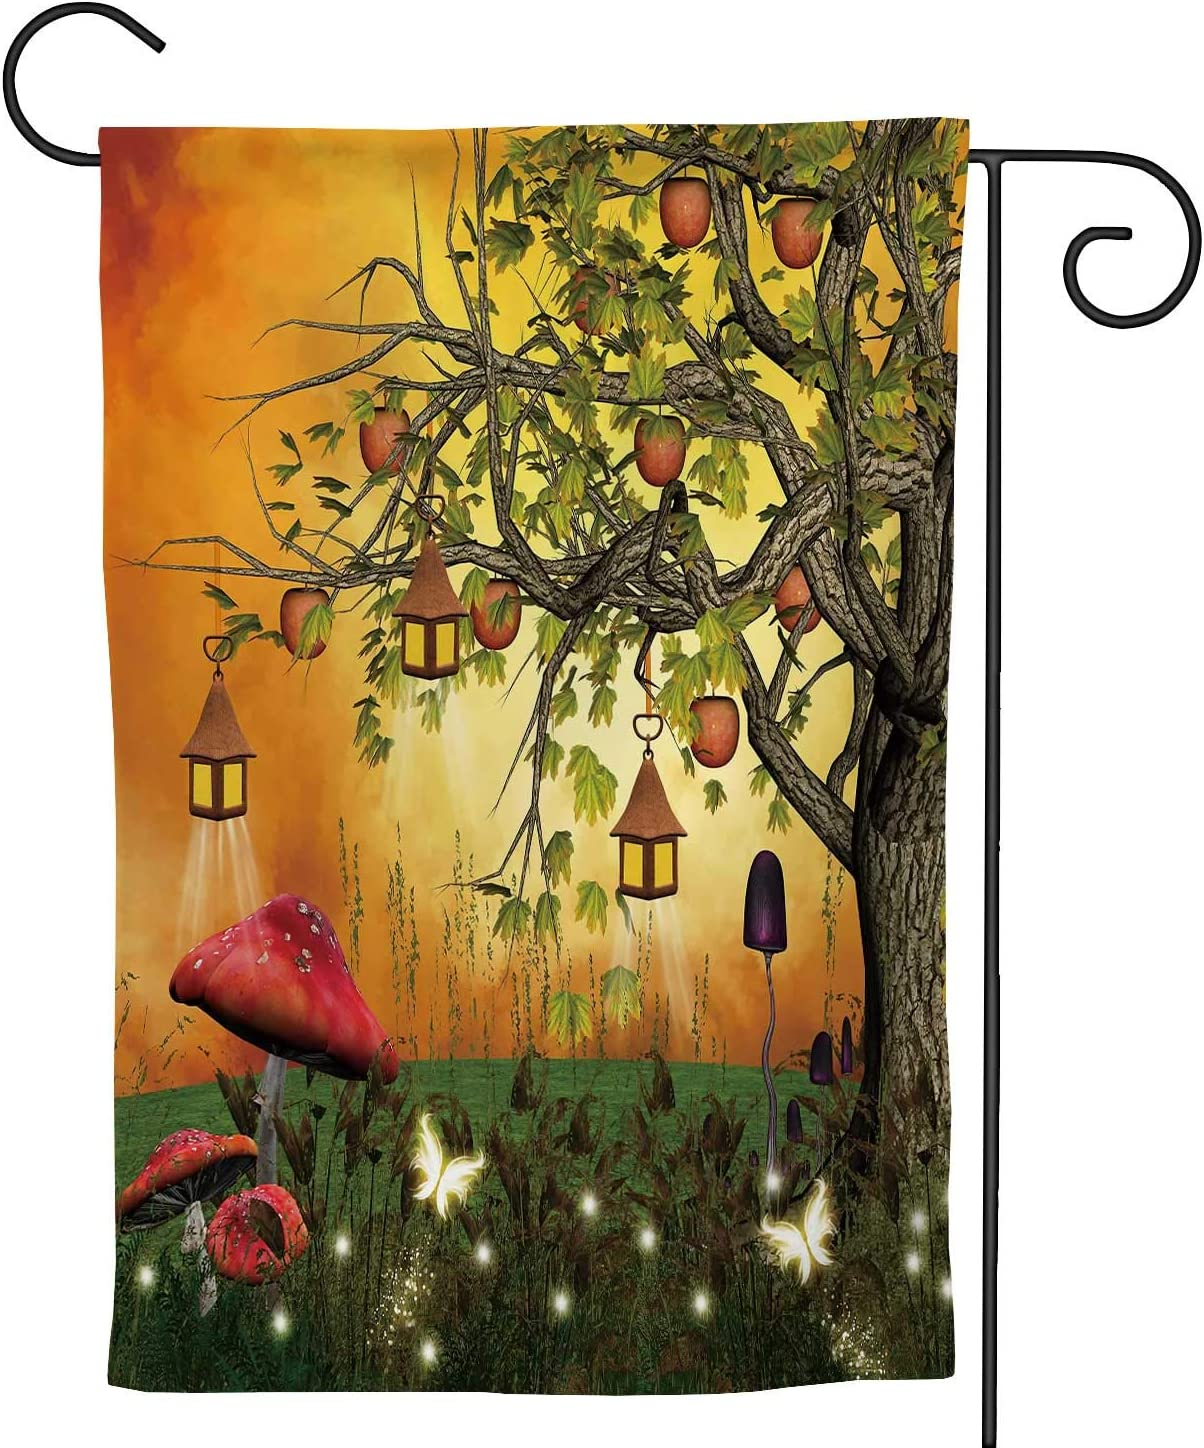 C COABALLA Tree with s and Lanterns in an Enchanted Glade, Watercolor Garden Flag Double Sized, Rustic Yard Outdoor Decoration 28''x40''